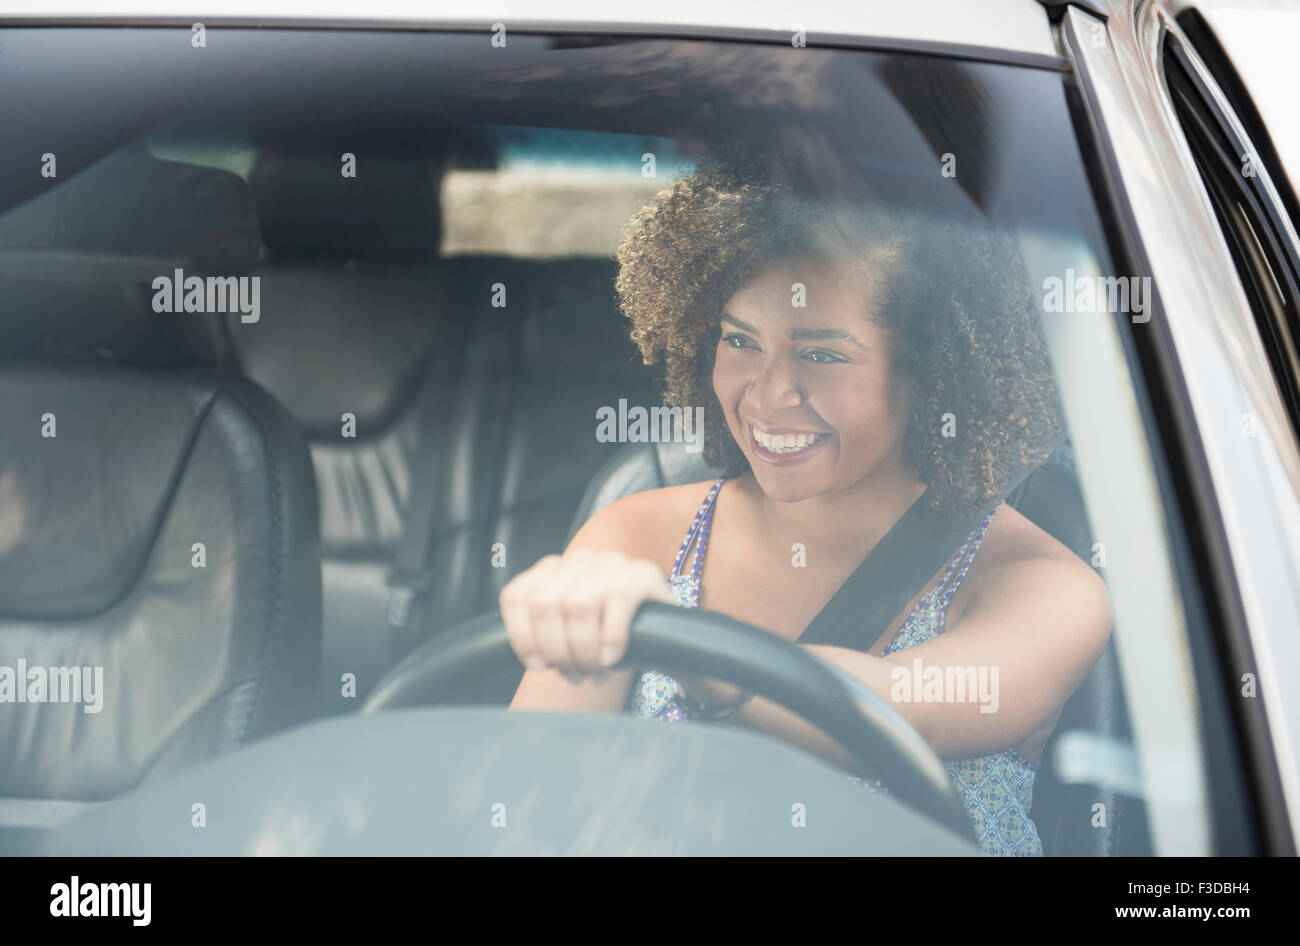 Young woman smiling while driving car - Stock Image